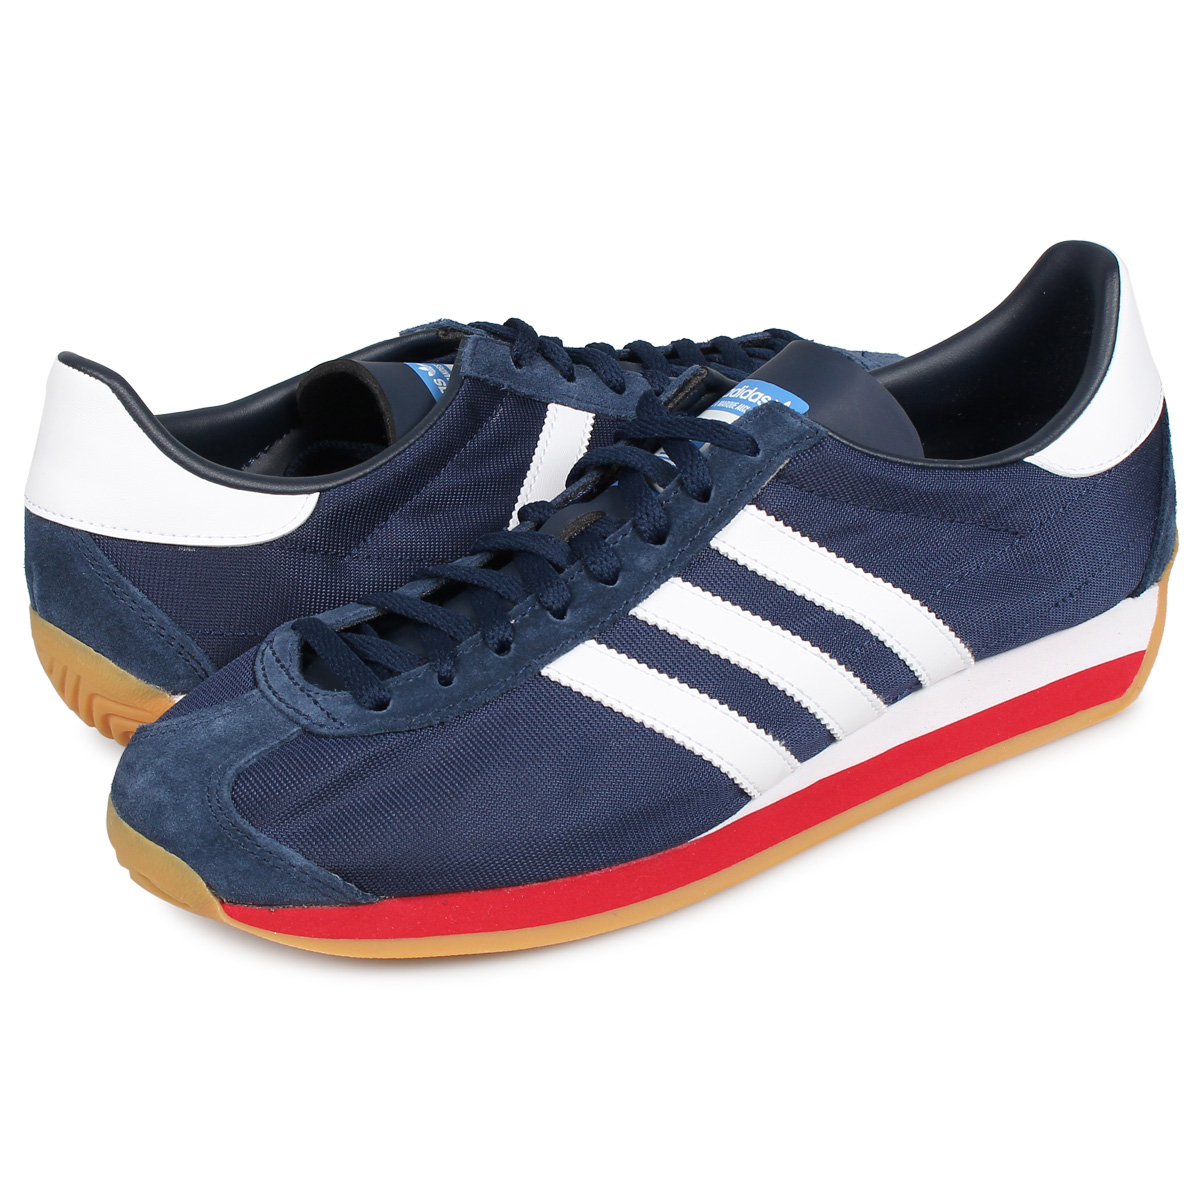 adidas Originals COUNTRY OG Adidas originals country OG sneakers men gap Dis navy EE5744